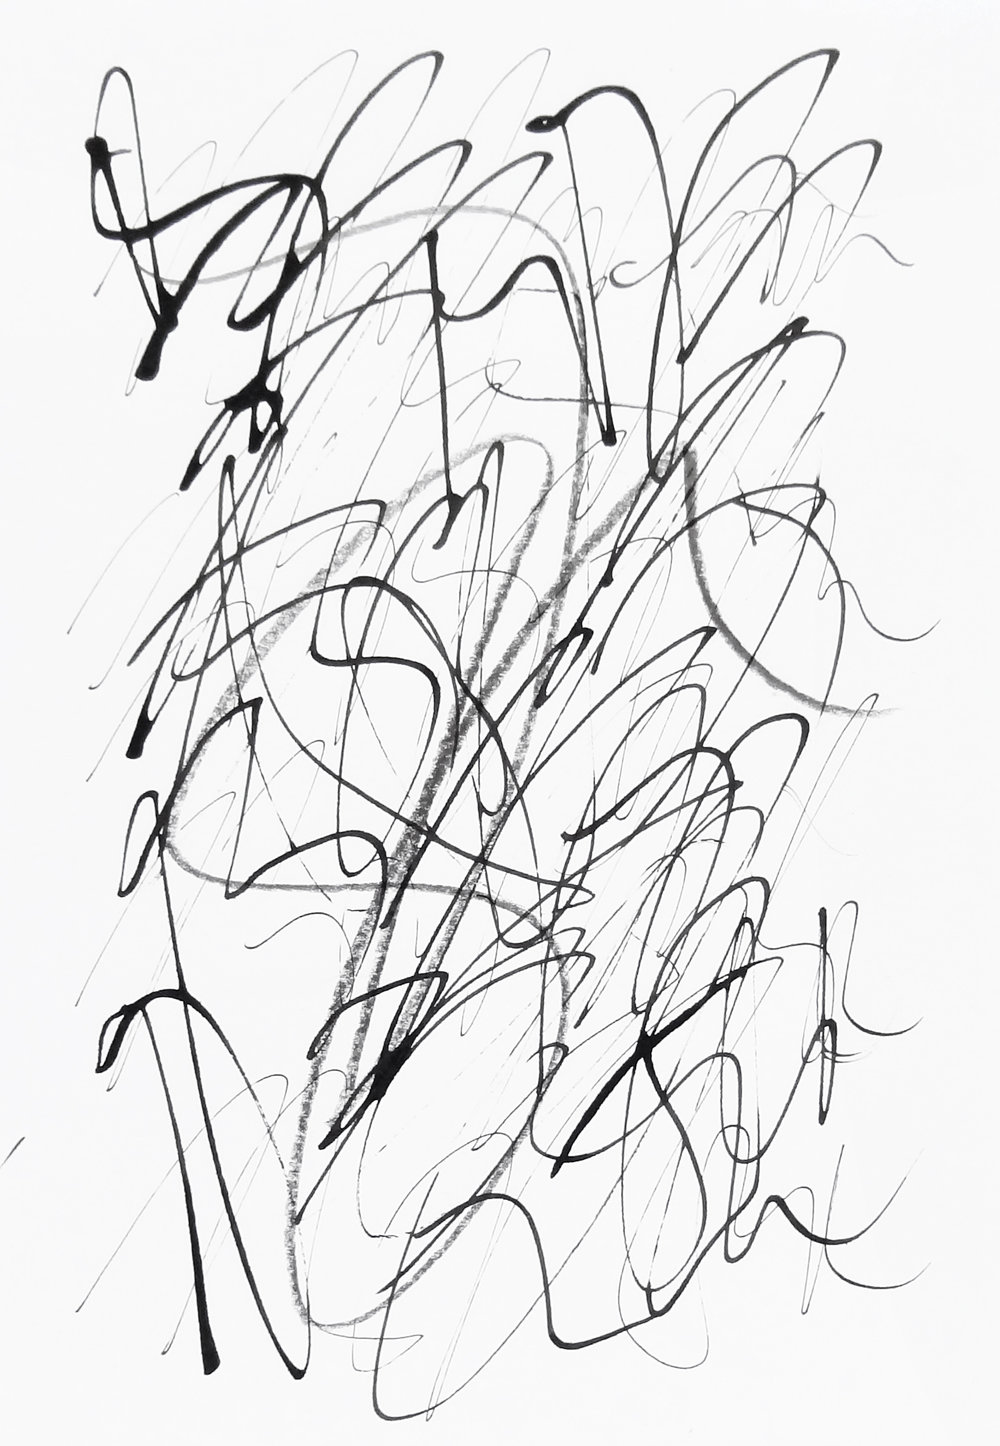 rhythm and flow studies, 2019 calligraphy ink and pencil on paper 42,0 x 29,7 cm (18-19)